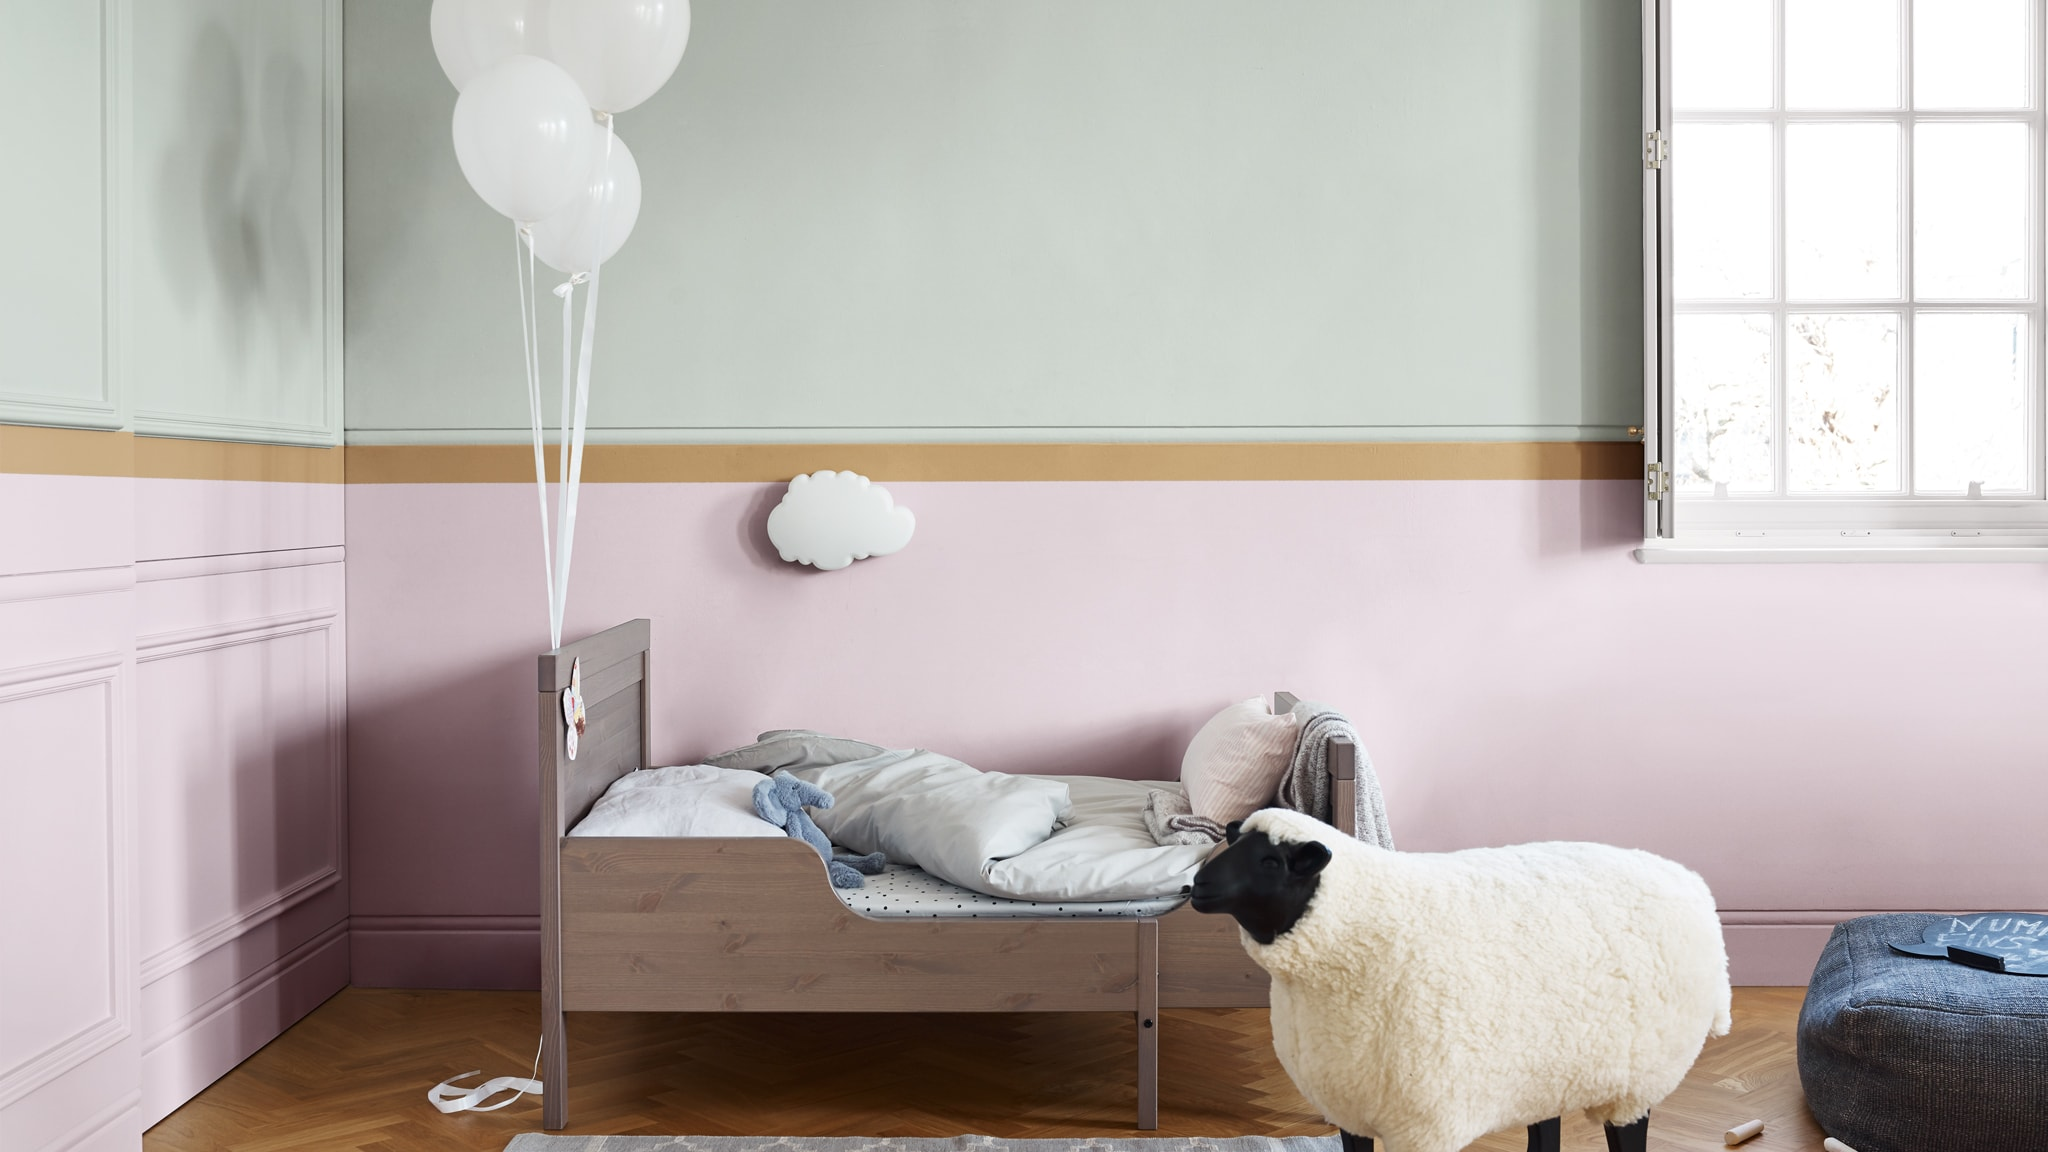 Deco-Paints-Colour-Futures-Colour-of-the-Year-2019-A-place-to-dream-Kidsroom-Inspiration-07